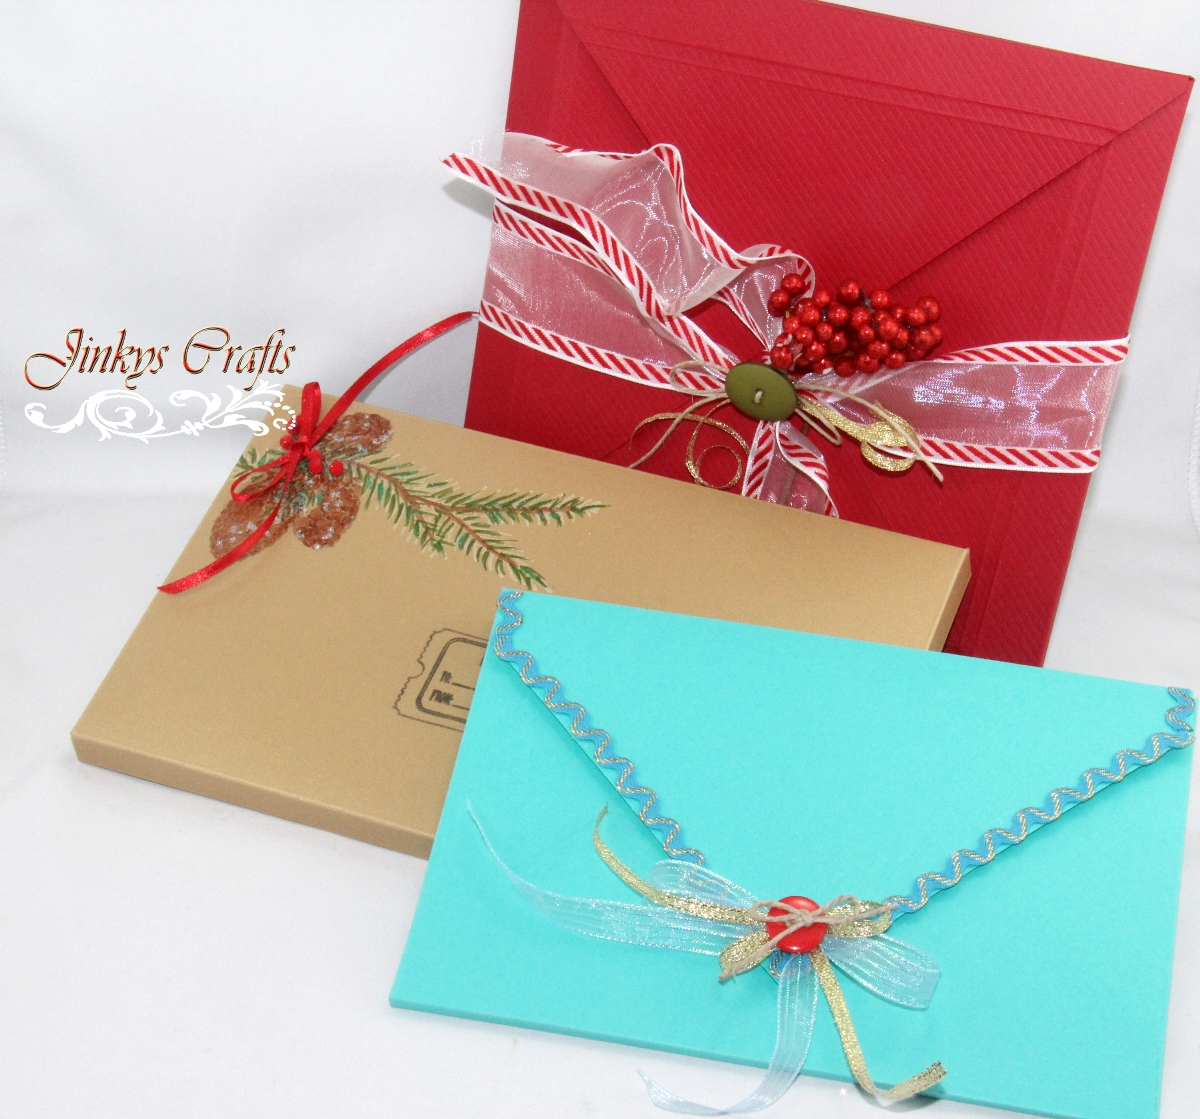 Jinky 39 s crafts designs june 2013 for Christmas card 3d designs